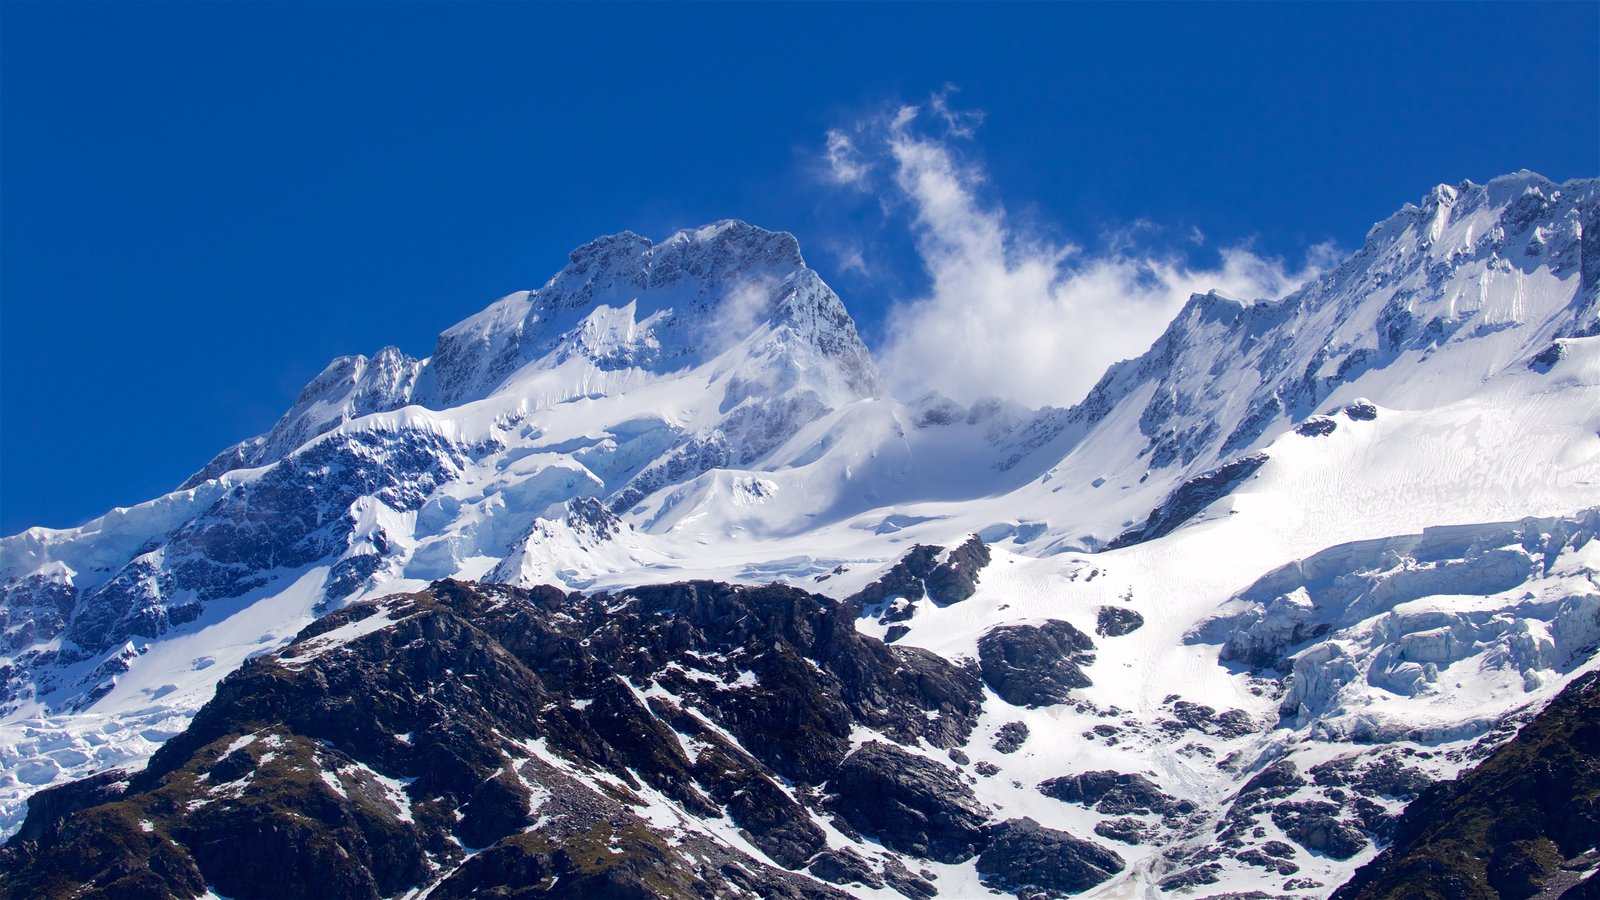 Mount Cook National Park featuring mountains and snow